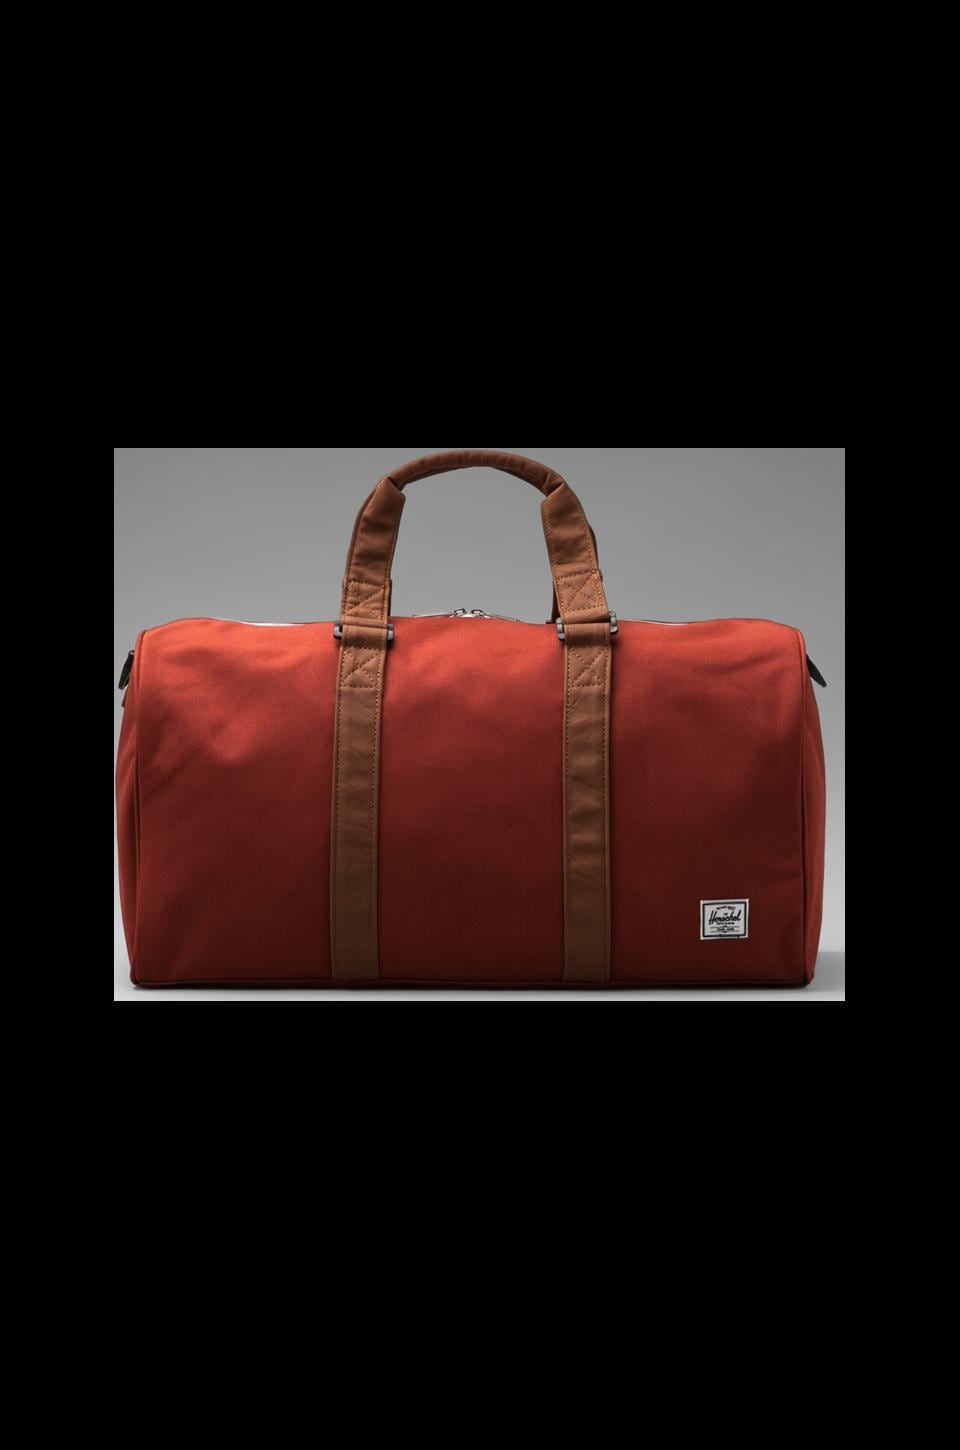 Herschel Supply Co. Ravine Duffle in Rust/Tan